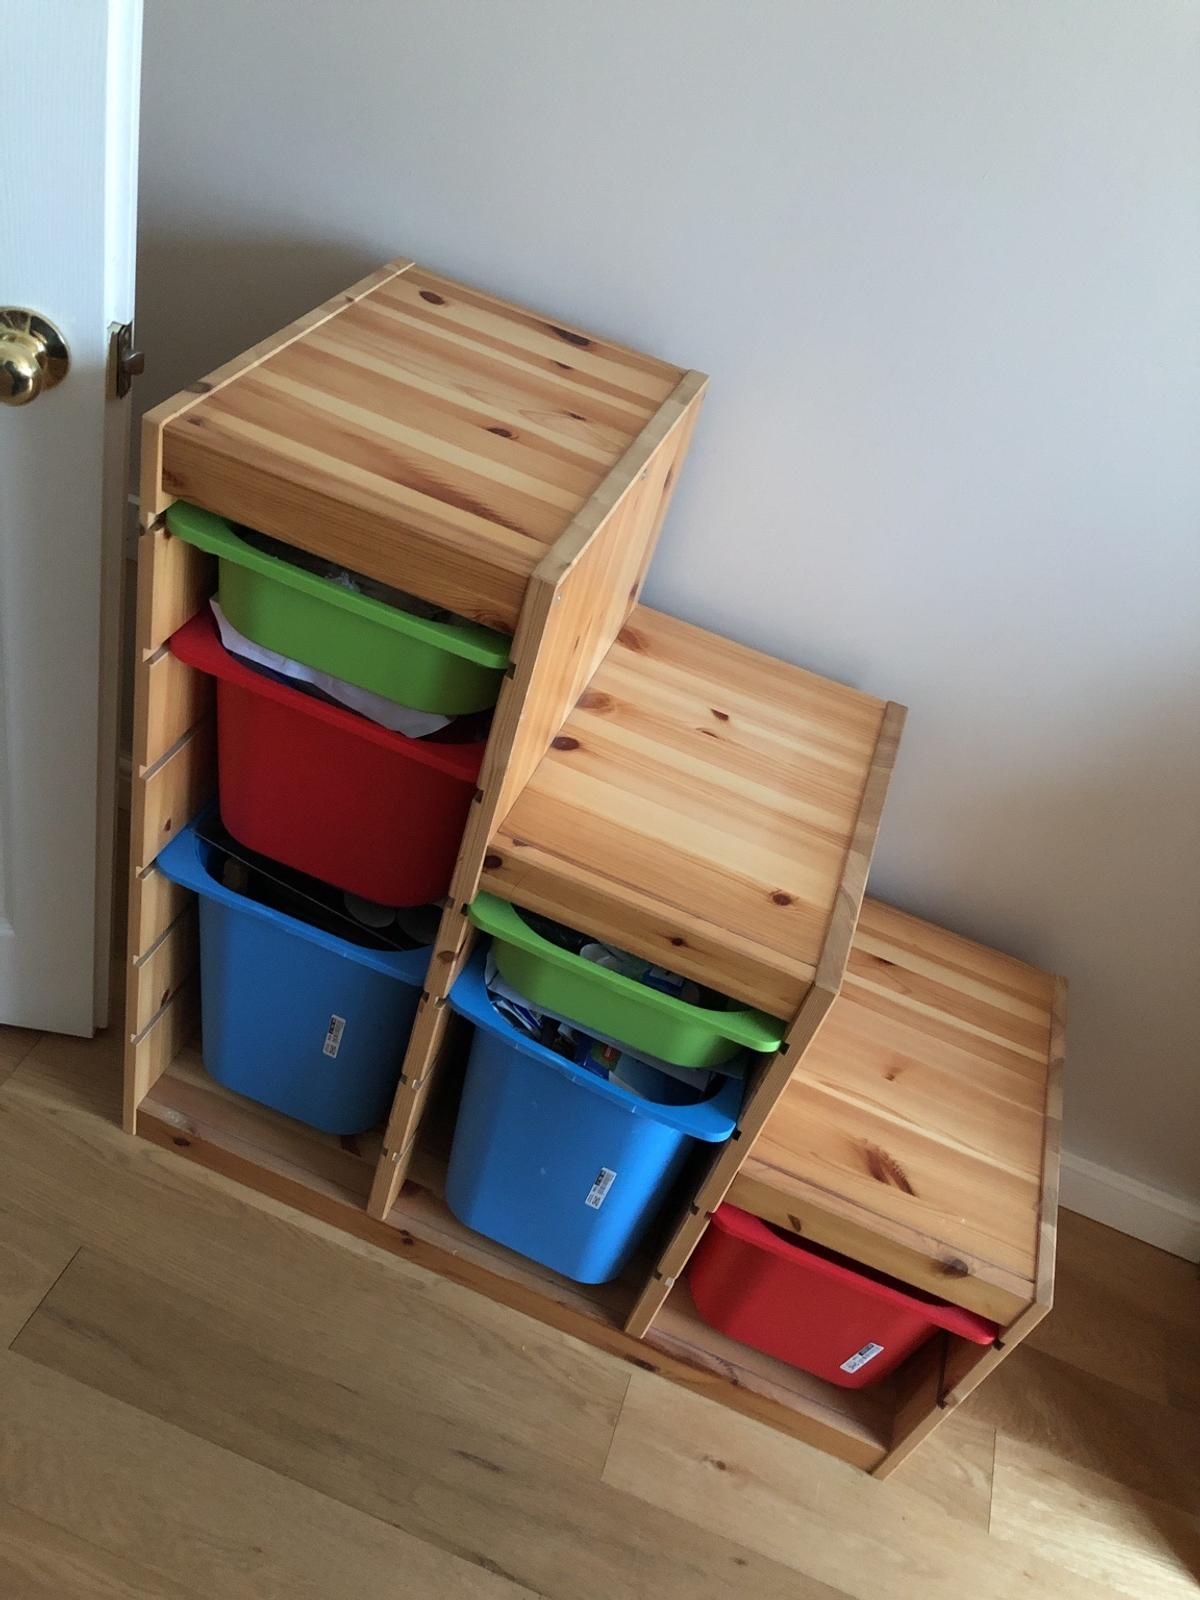 To be sold with the coloured boxes Great storage unit No marks or stains on the unit